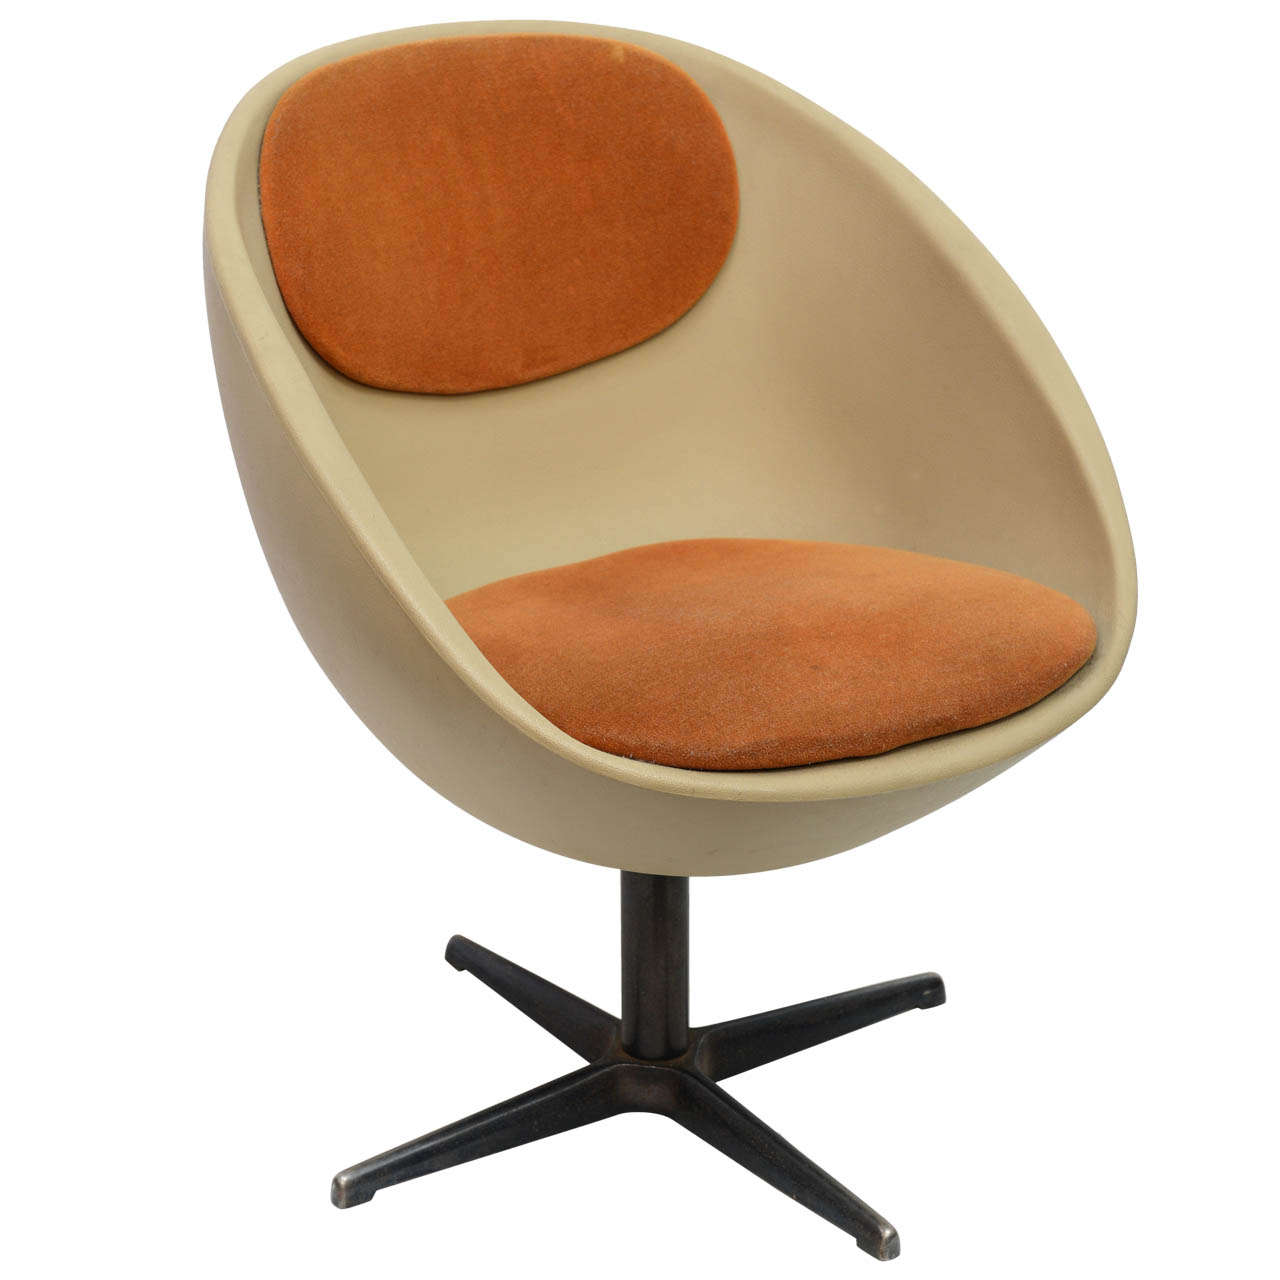 swivel chair egg spandex covers for sale 1960s ball at 1stdibs